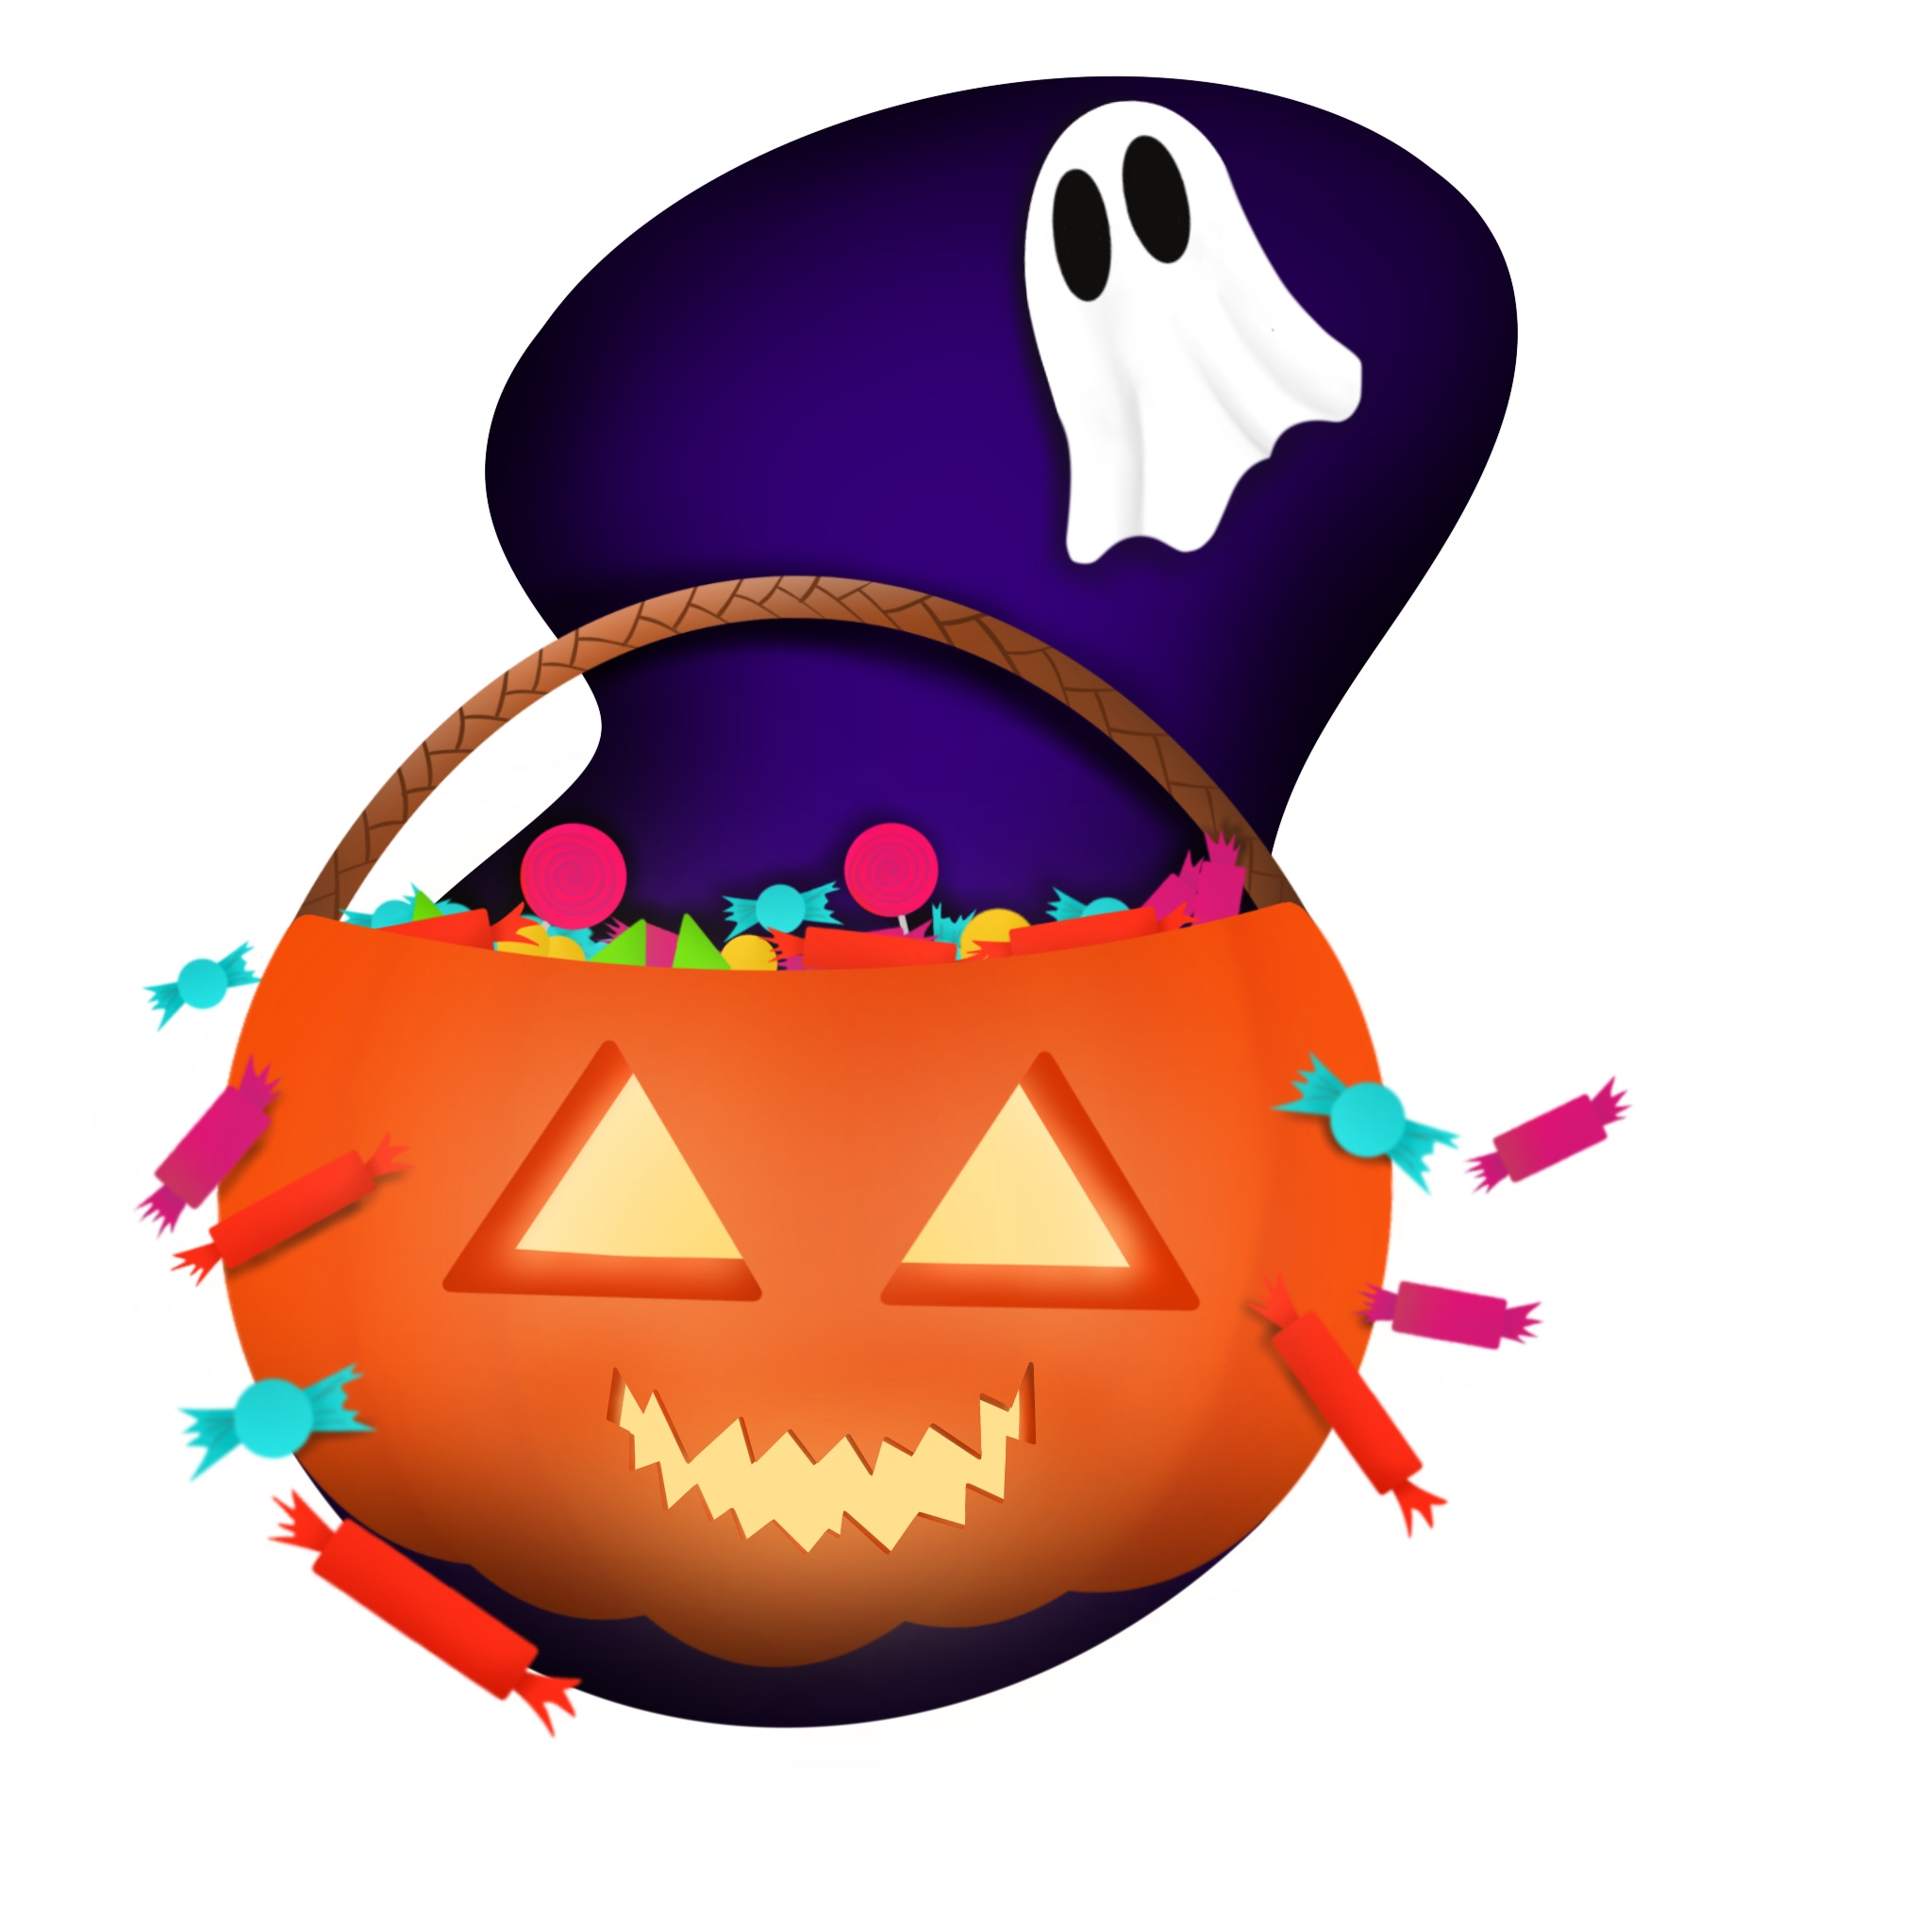 An illustration of a scary pumpkin filled with candies and a floating ghost.